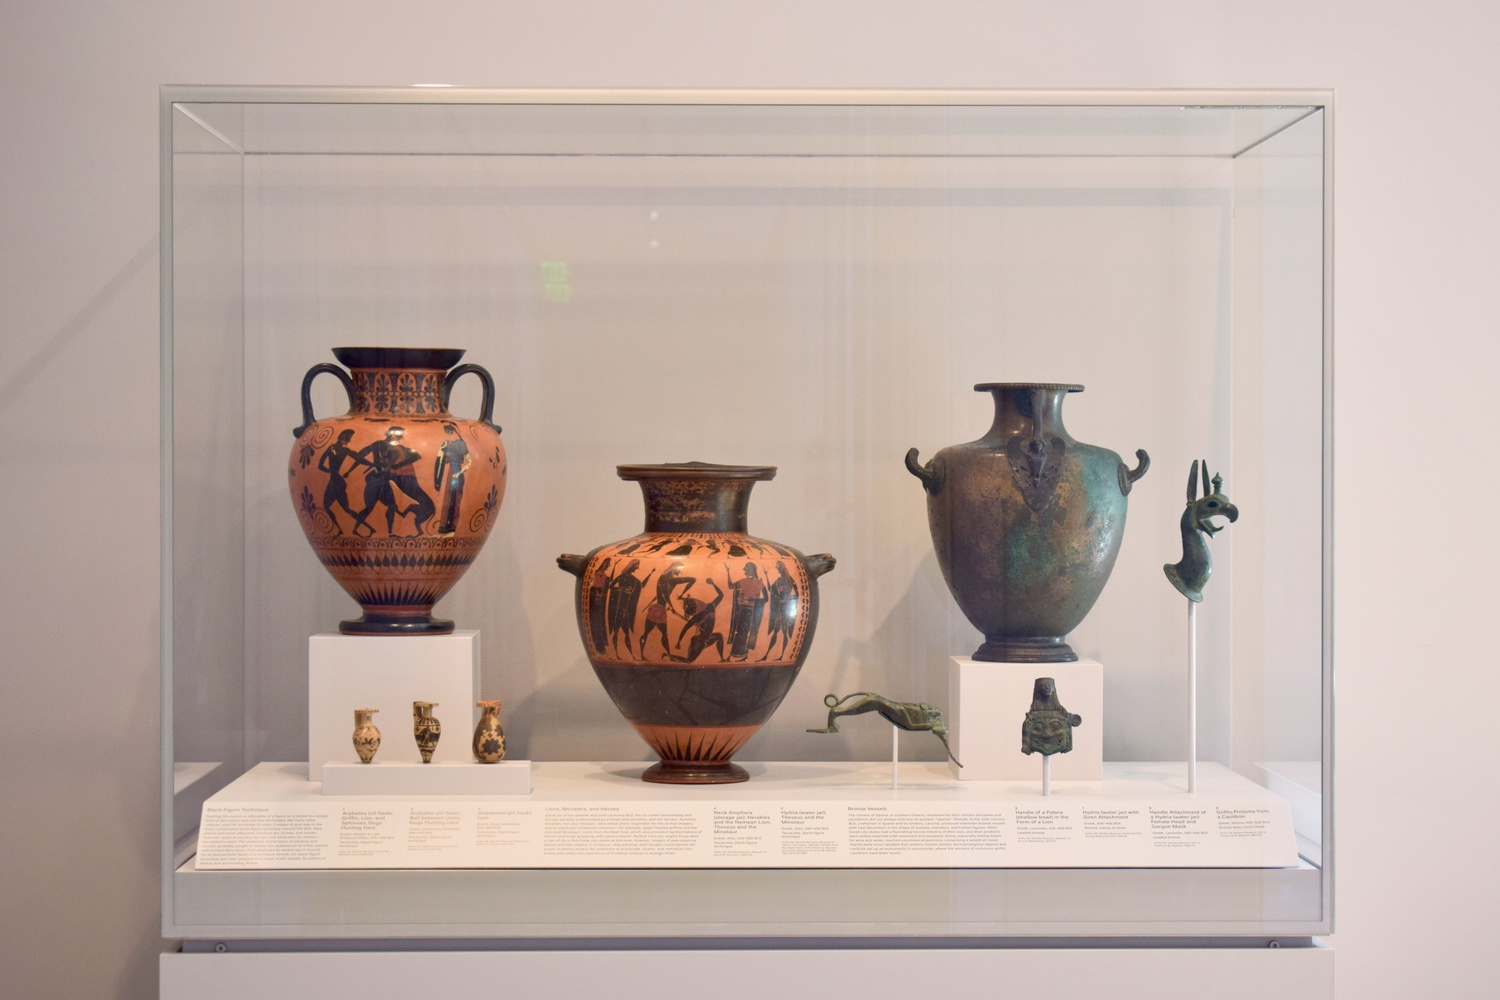 The Greek vases are located on the third floor of the Harvard Art Museums.